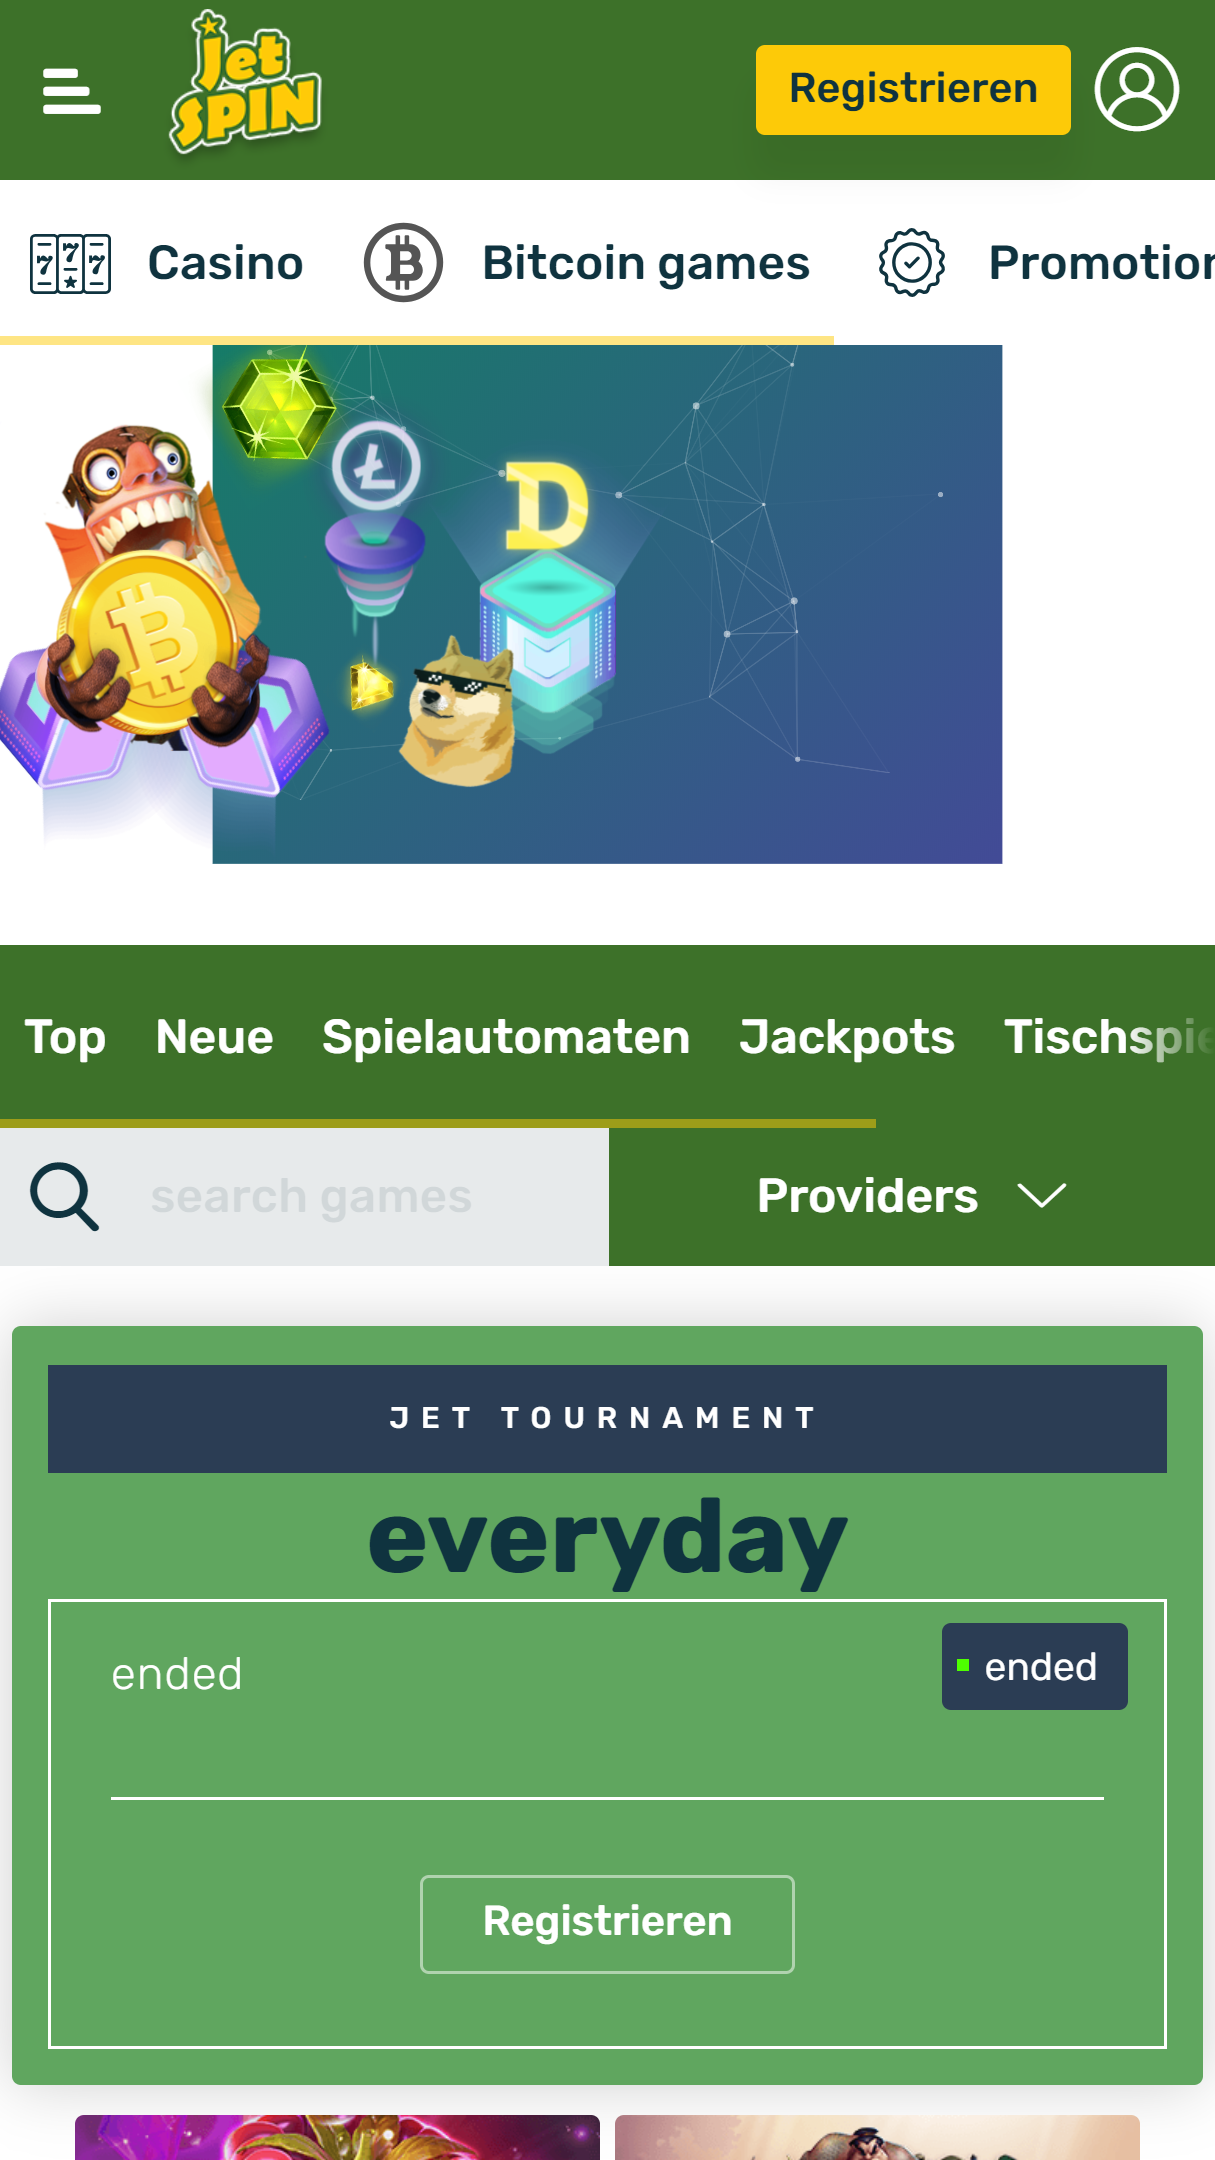 JetSpin App Homepage